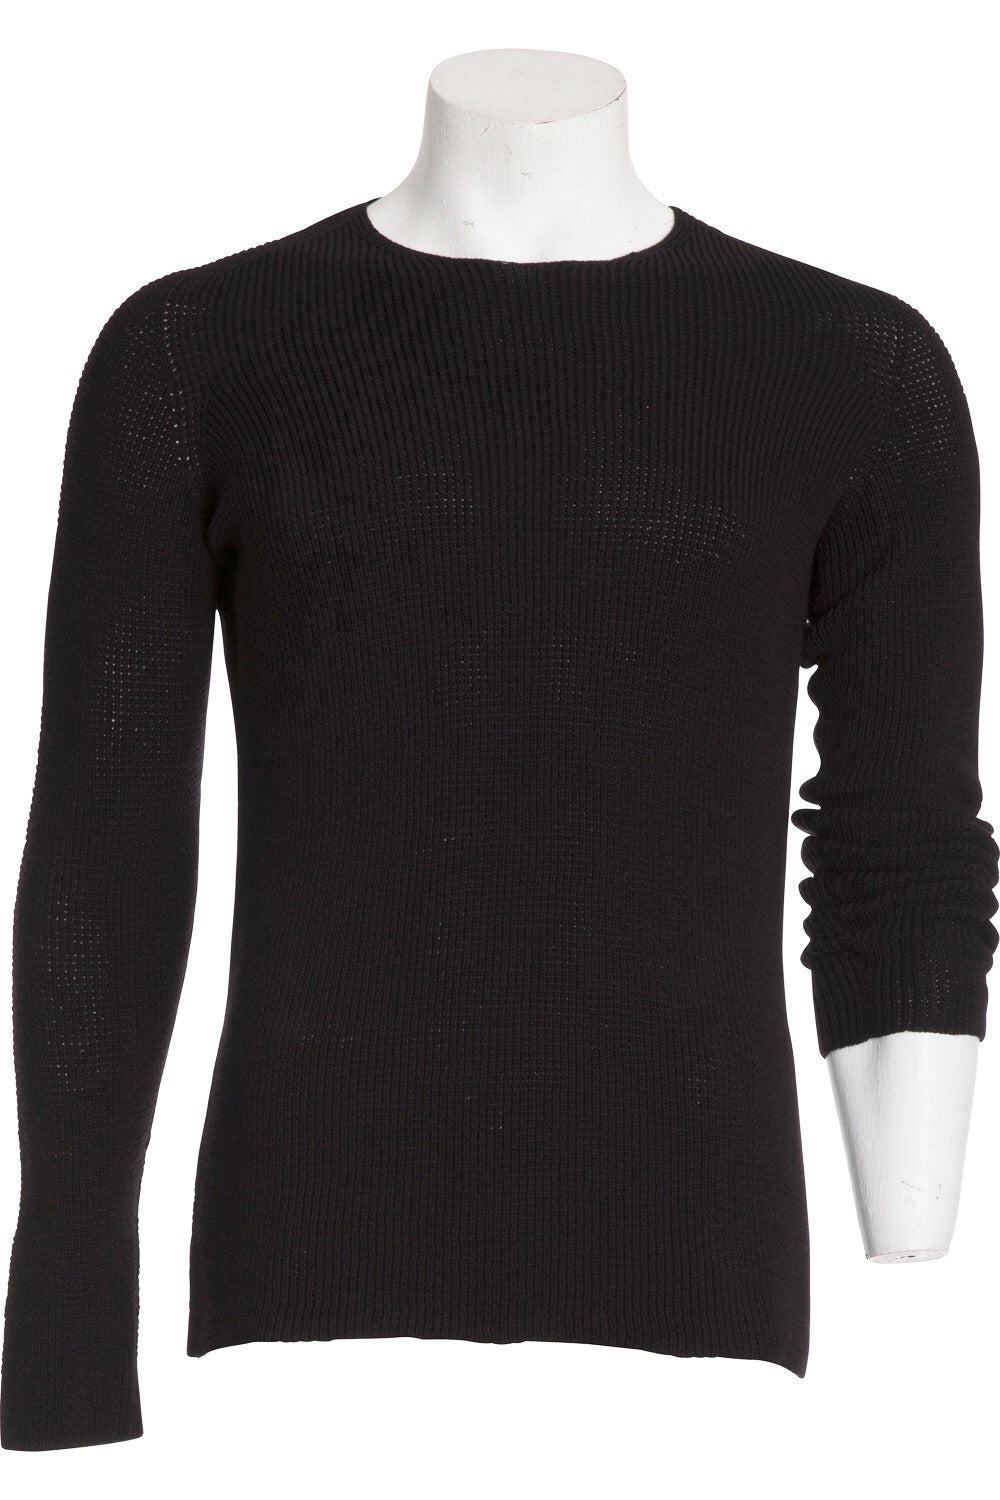 Hannes Roether Merino Sweater - LAST ONE!